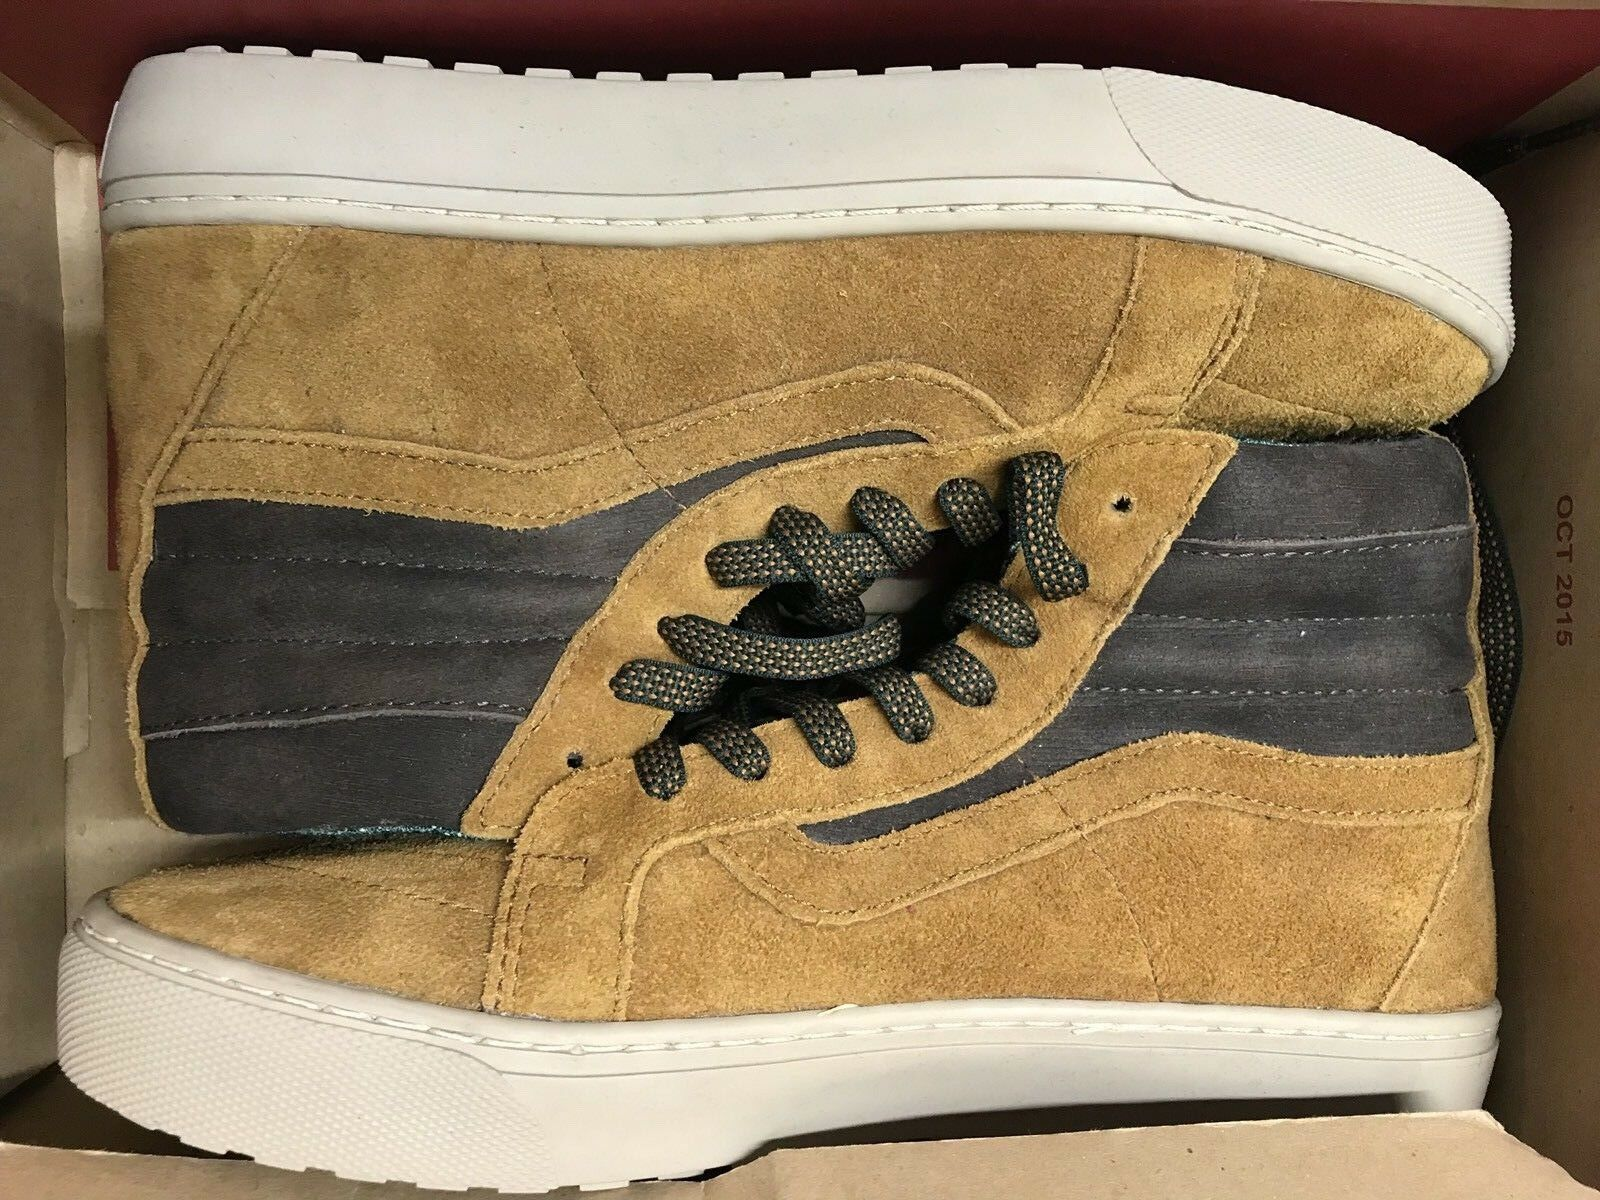 Vans Sk8 Hi MTE Cup Cathay Hummus Leather Suede Boots